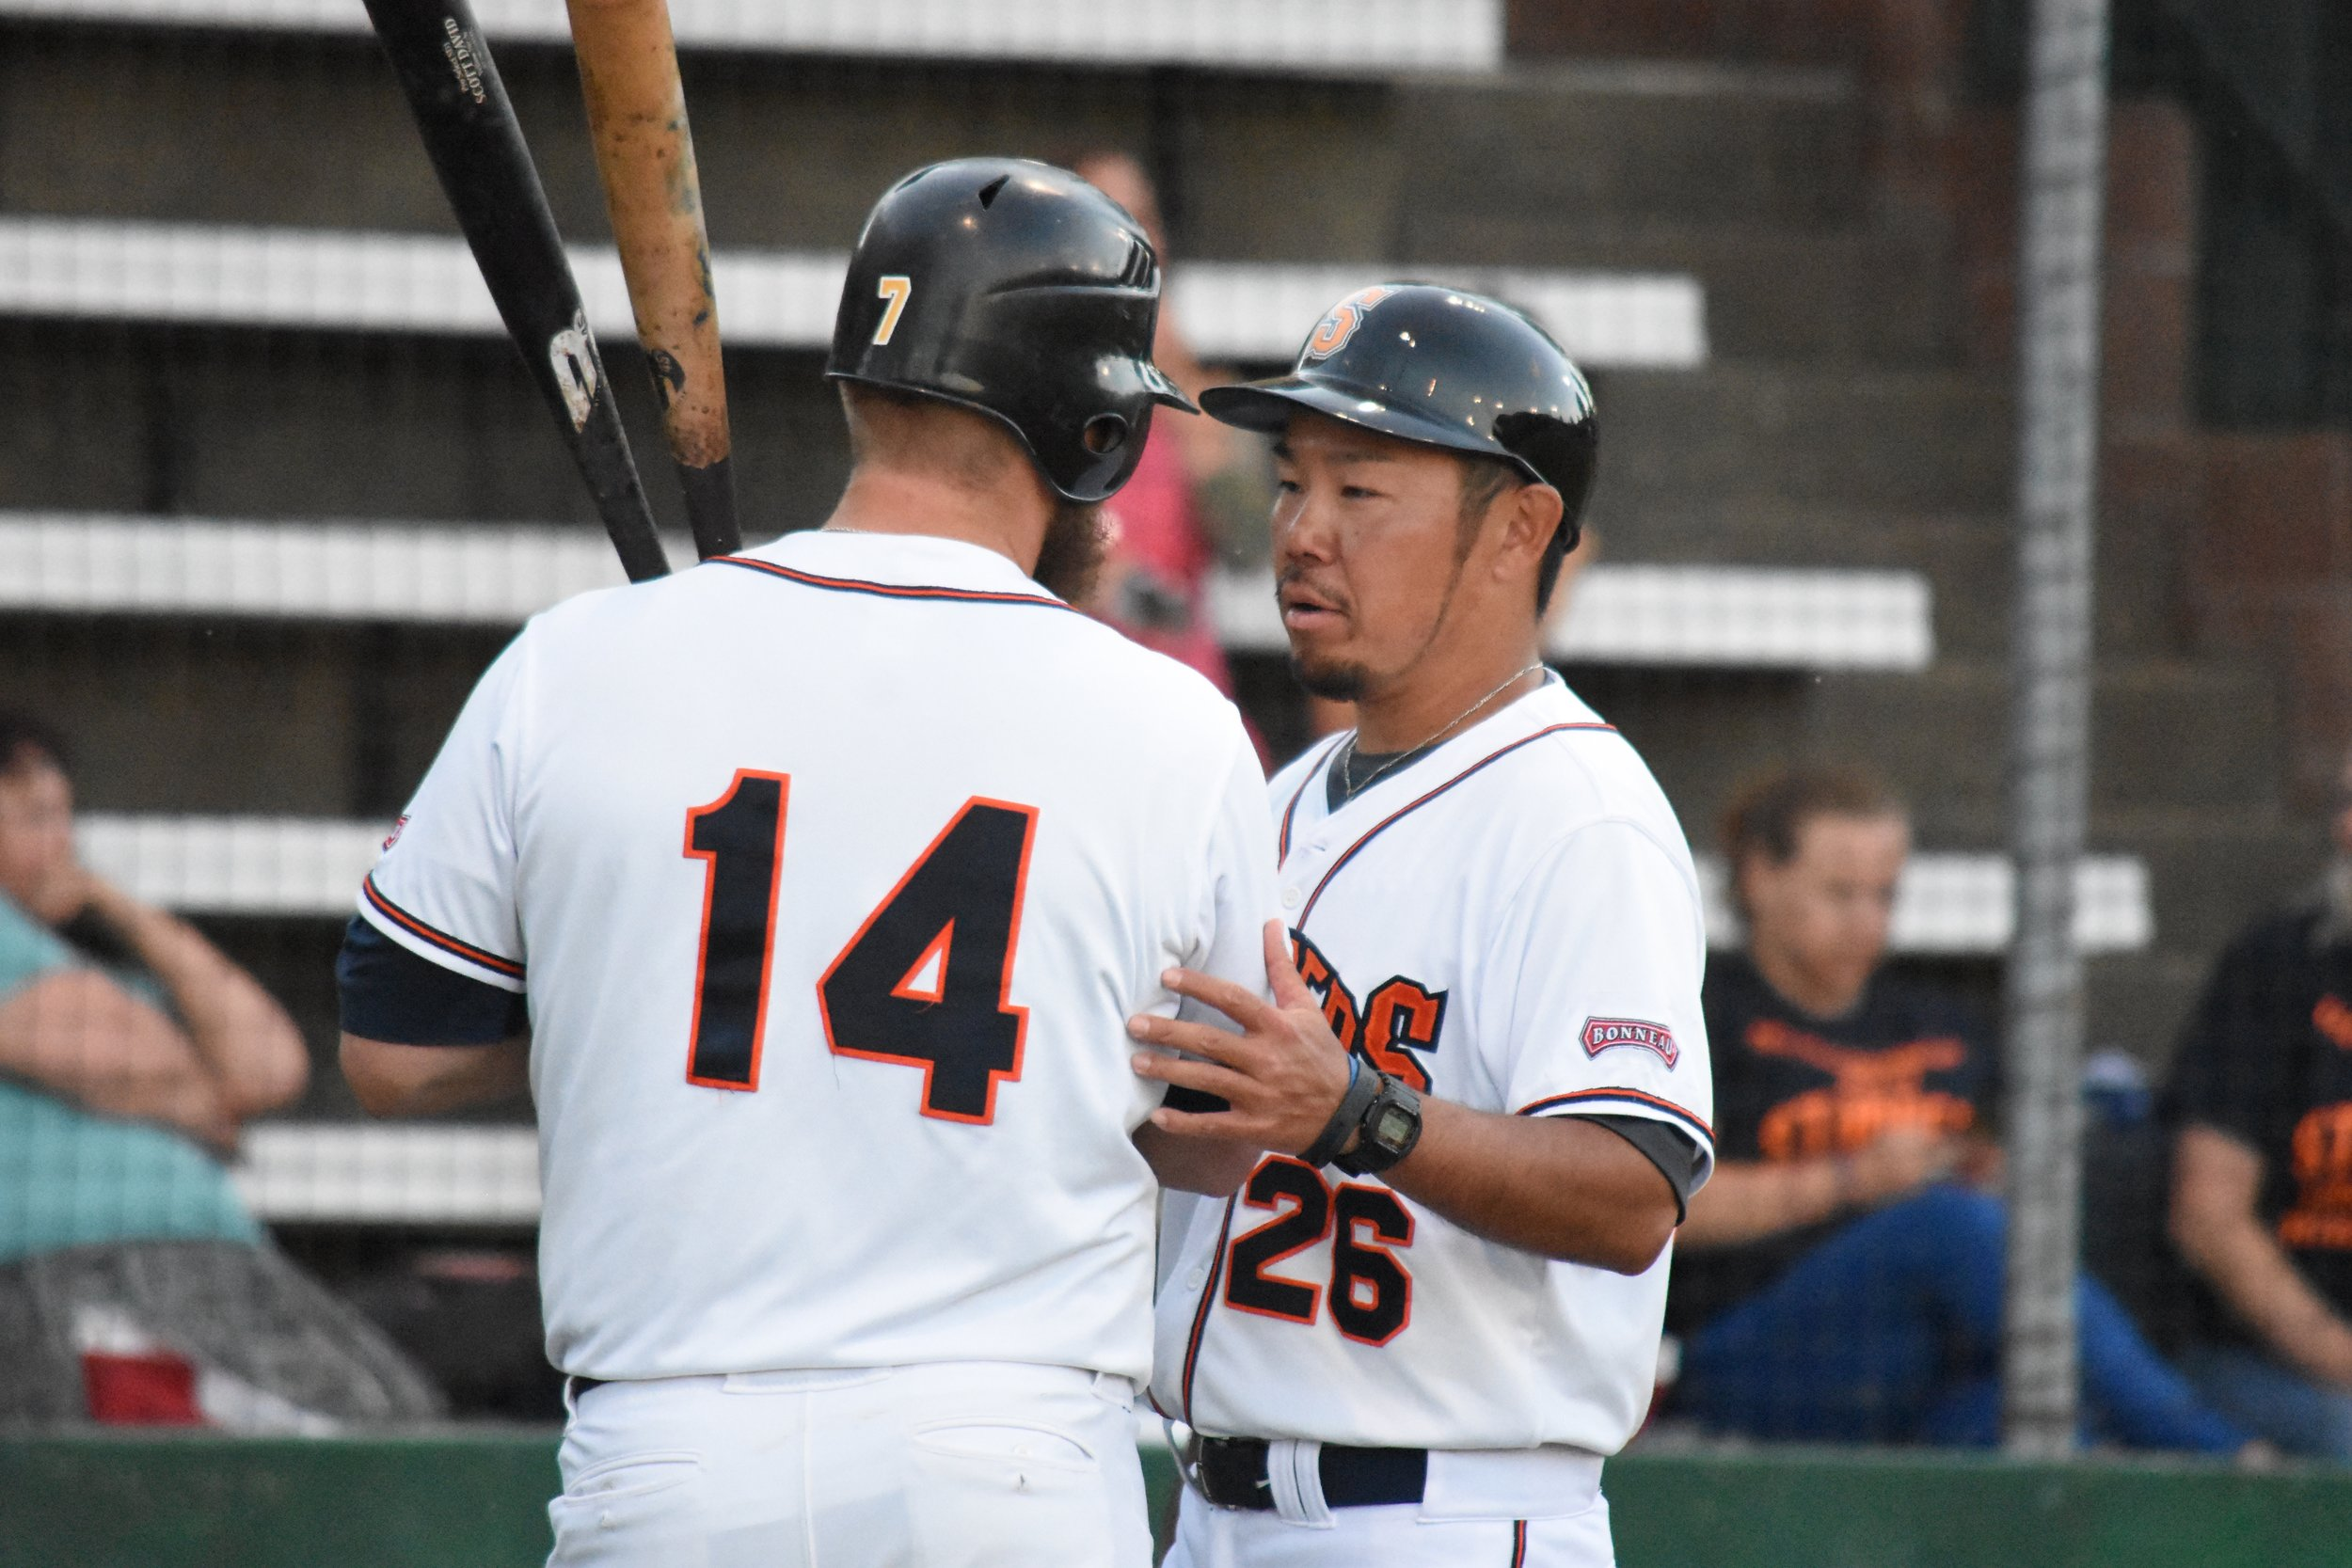 Manager Takashi Miyoshi talks with Scott David at Peoples Home Equity Ballpark at Arnold Field during the 2017 season. (James W. Toy III / Sonoma Stompers)